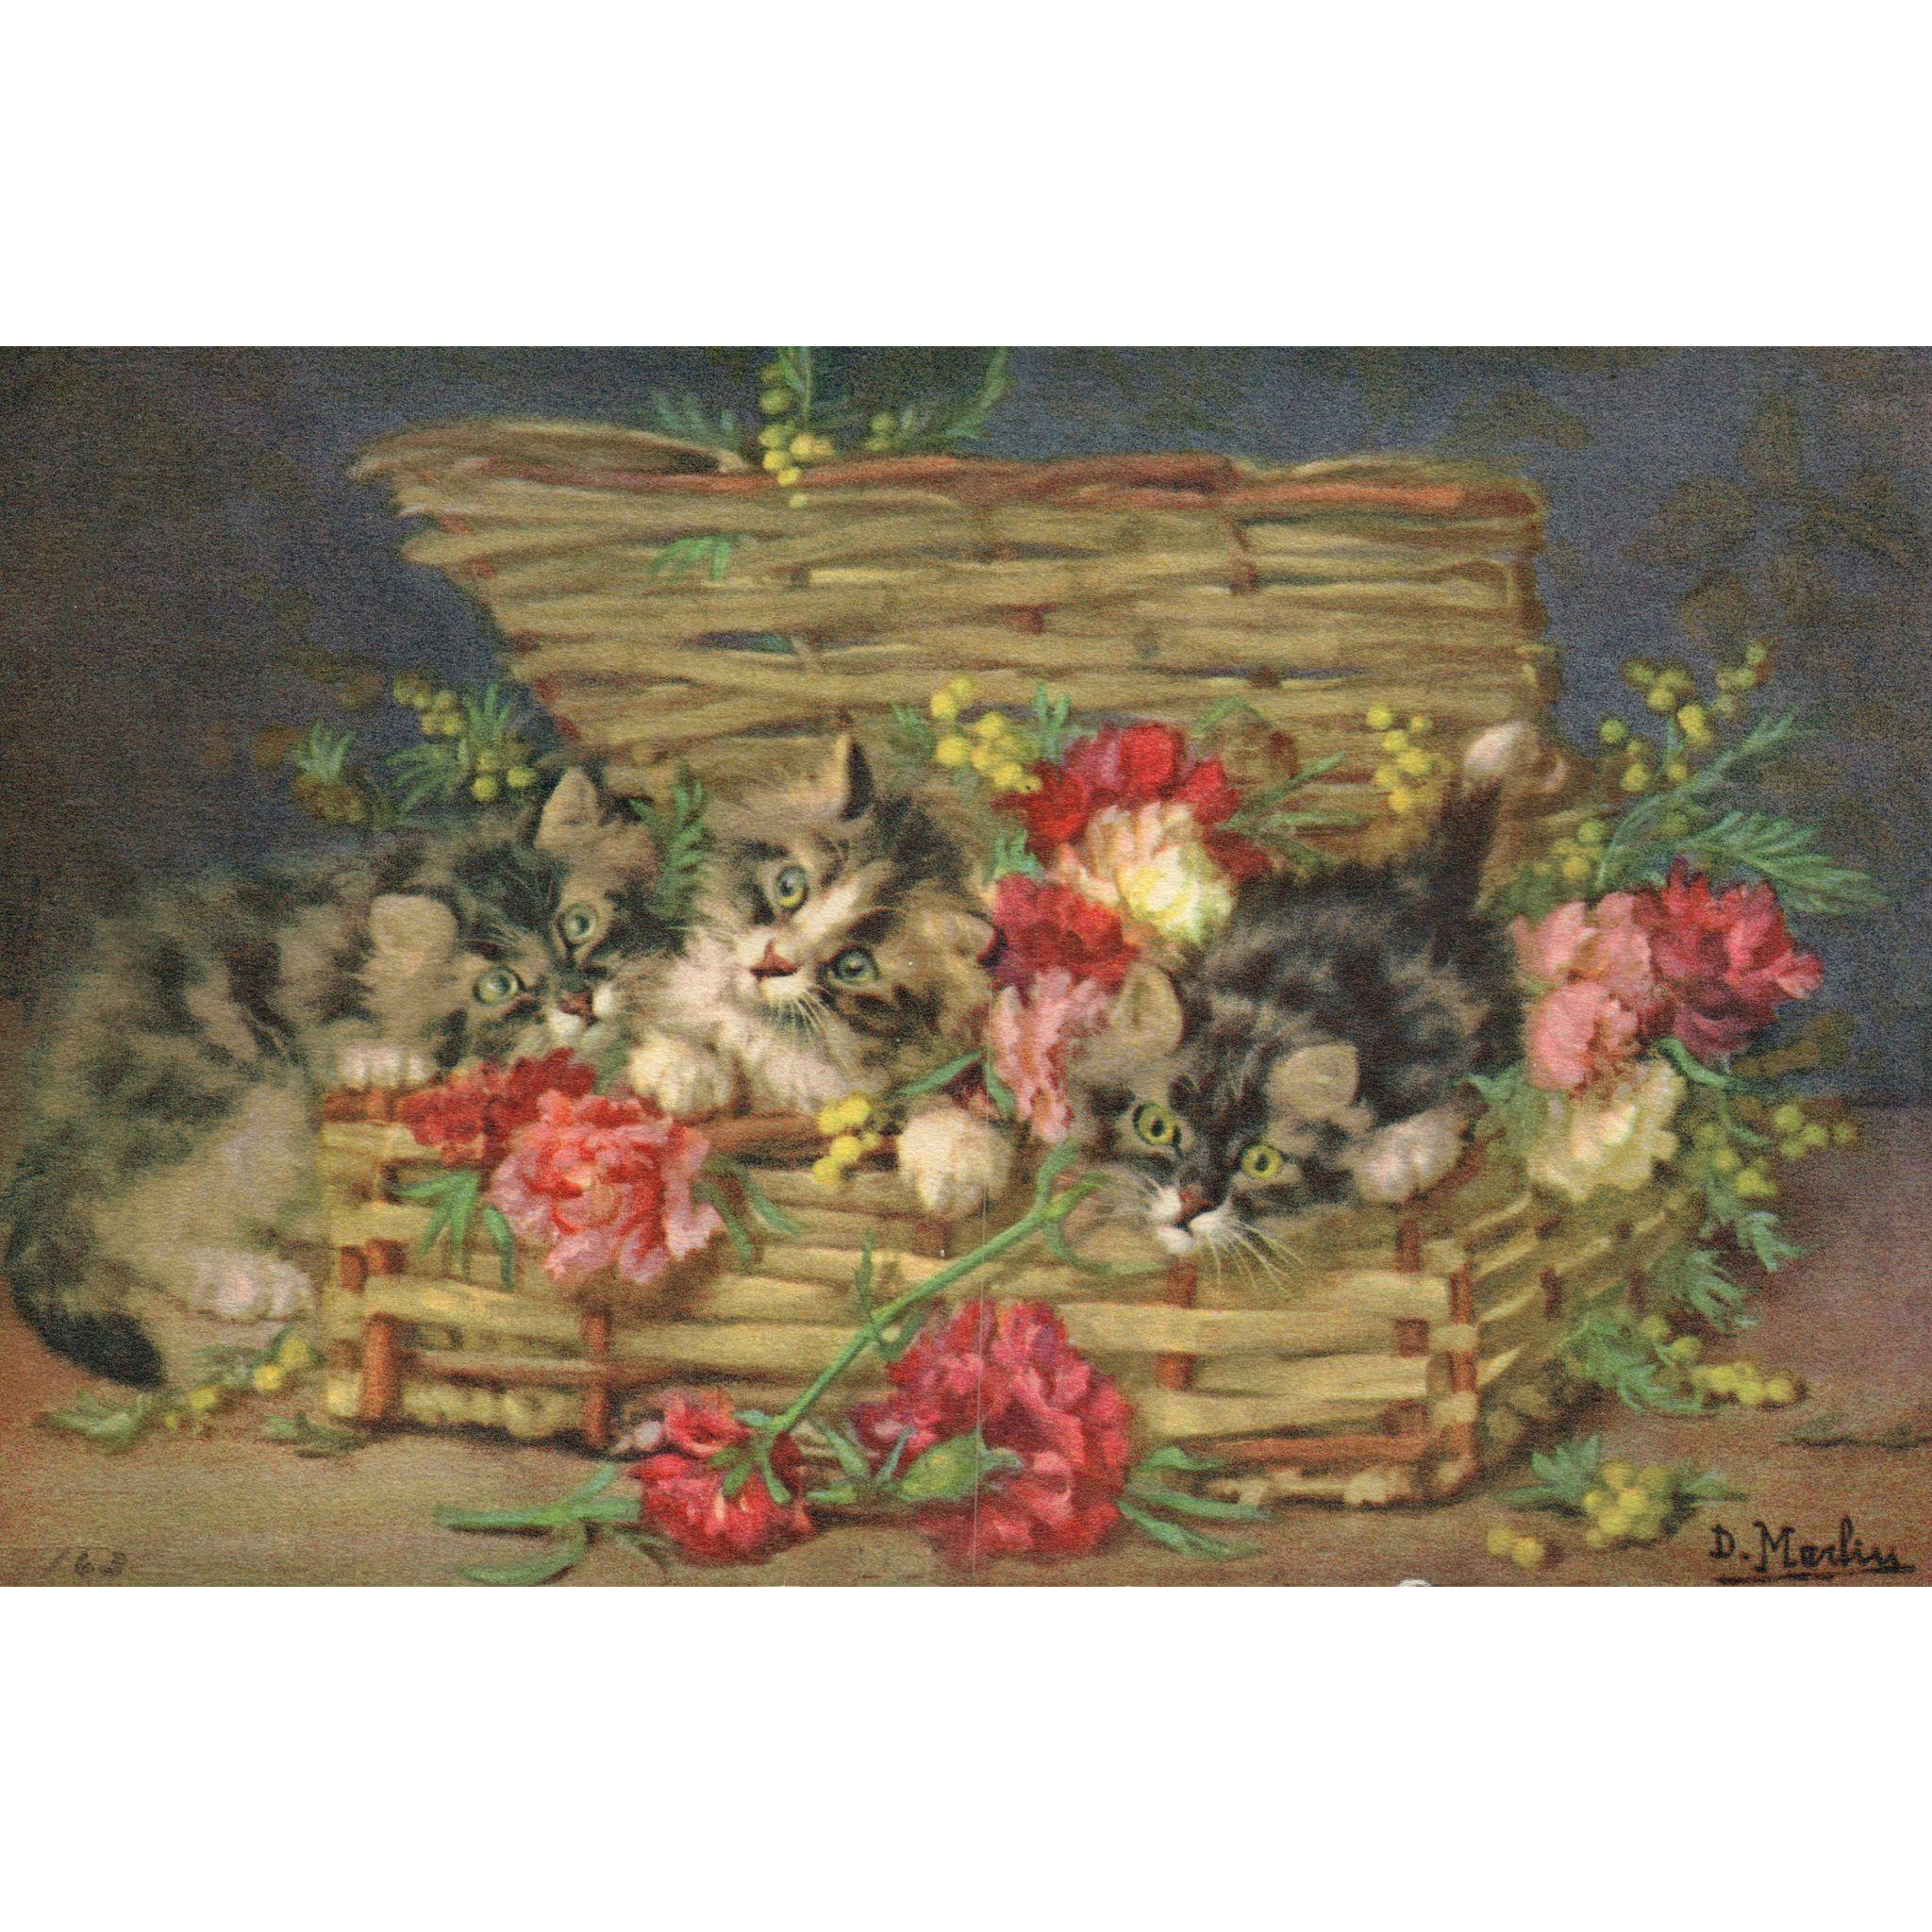 Artist Signed D Merlin Kittens in a basket with pink and red carnations  Number 163